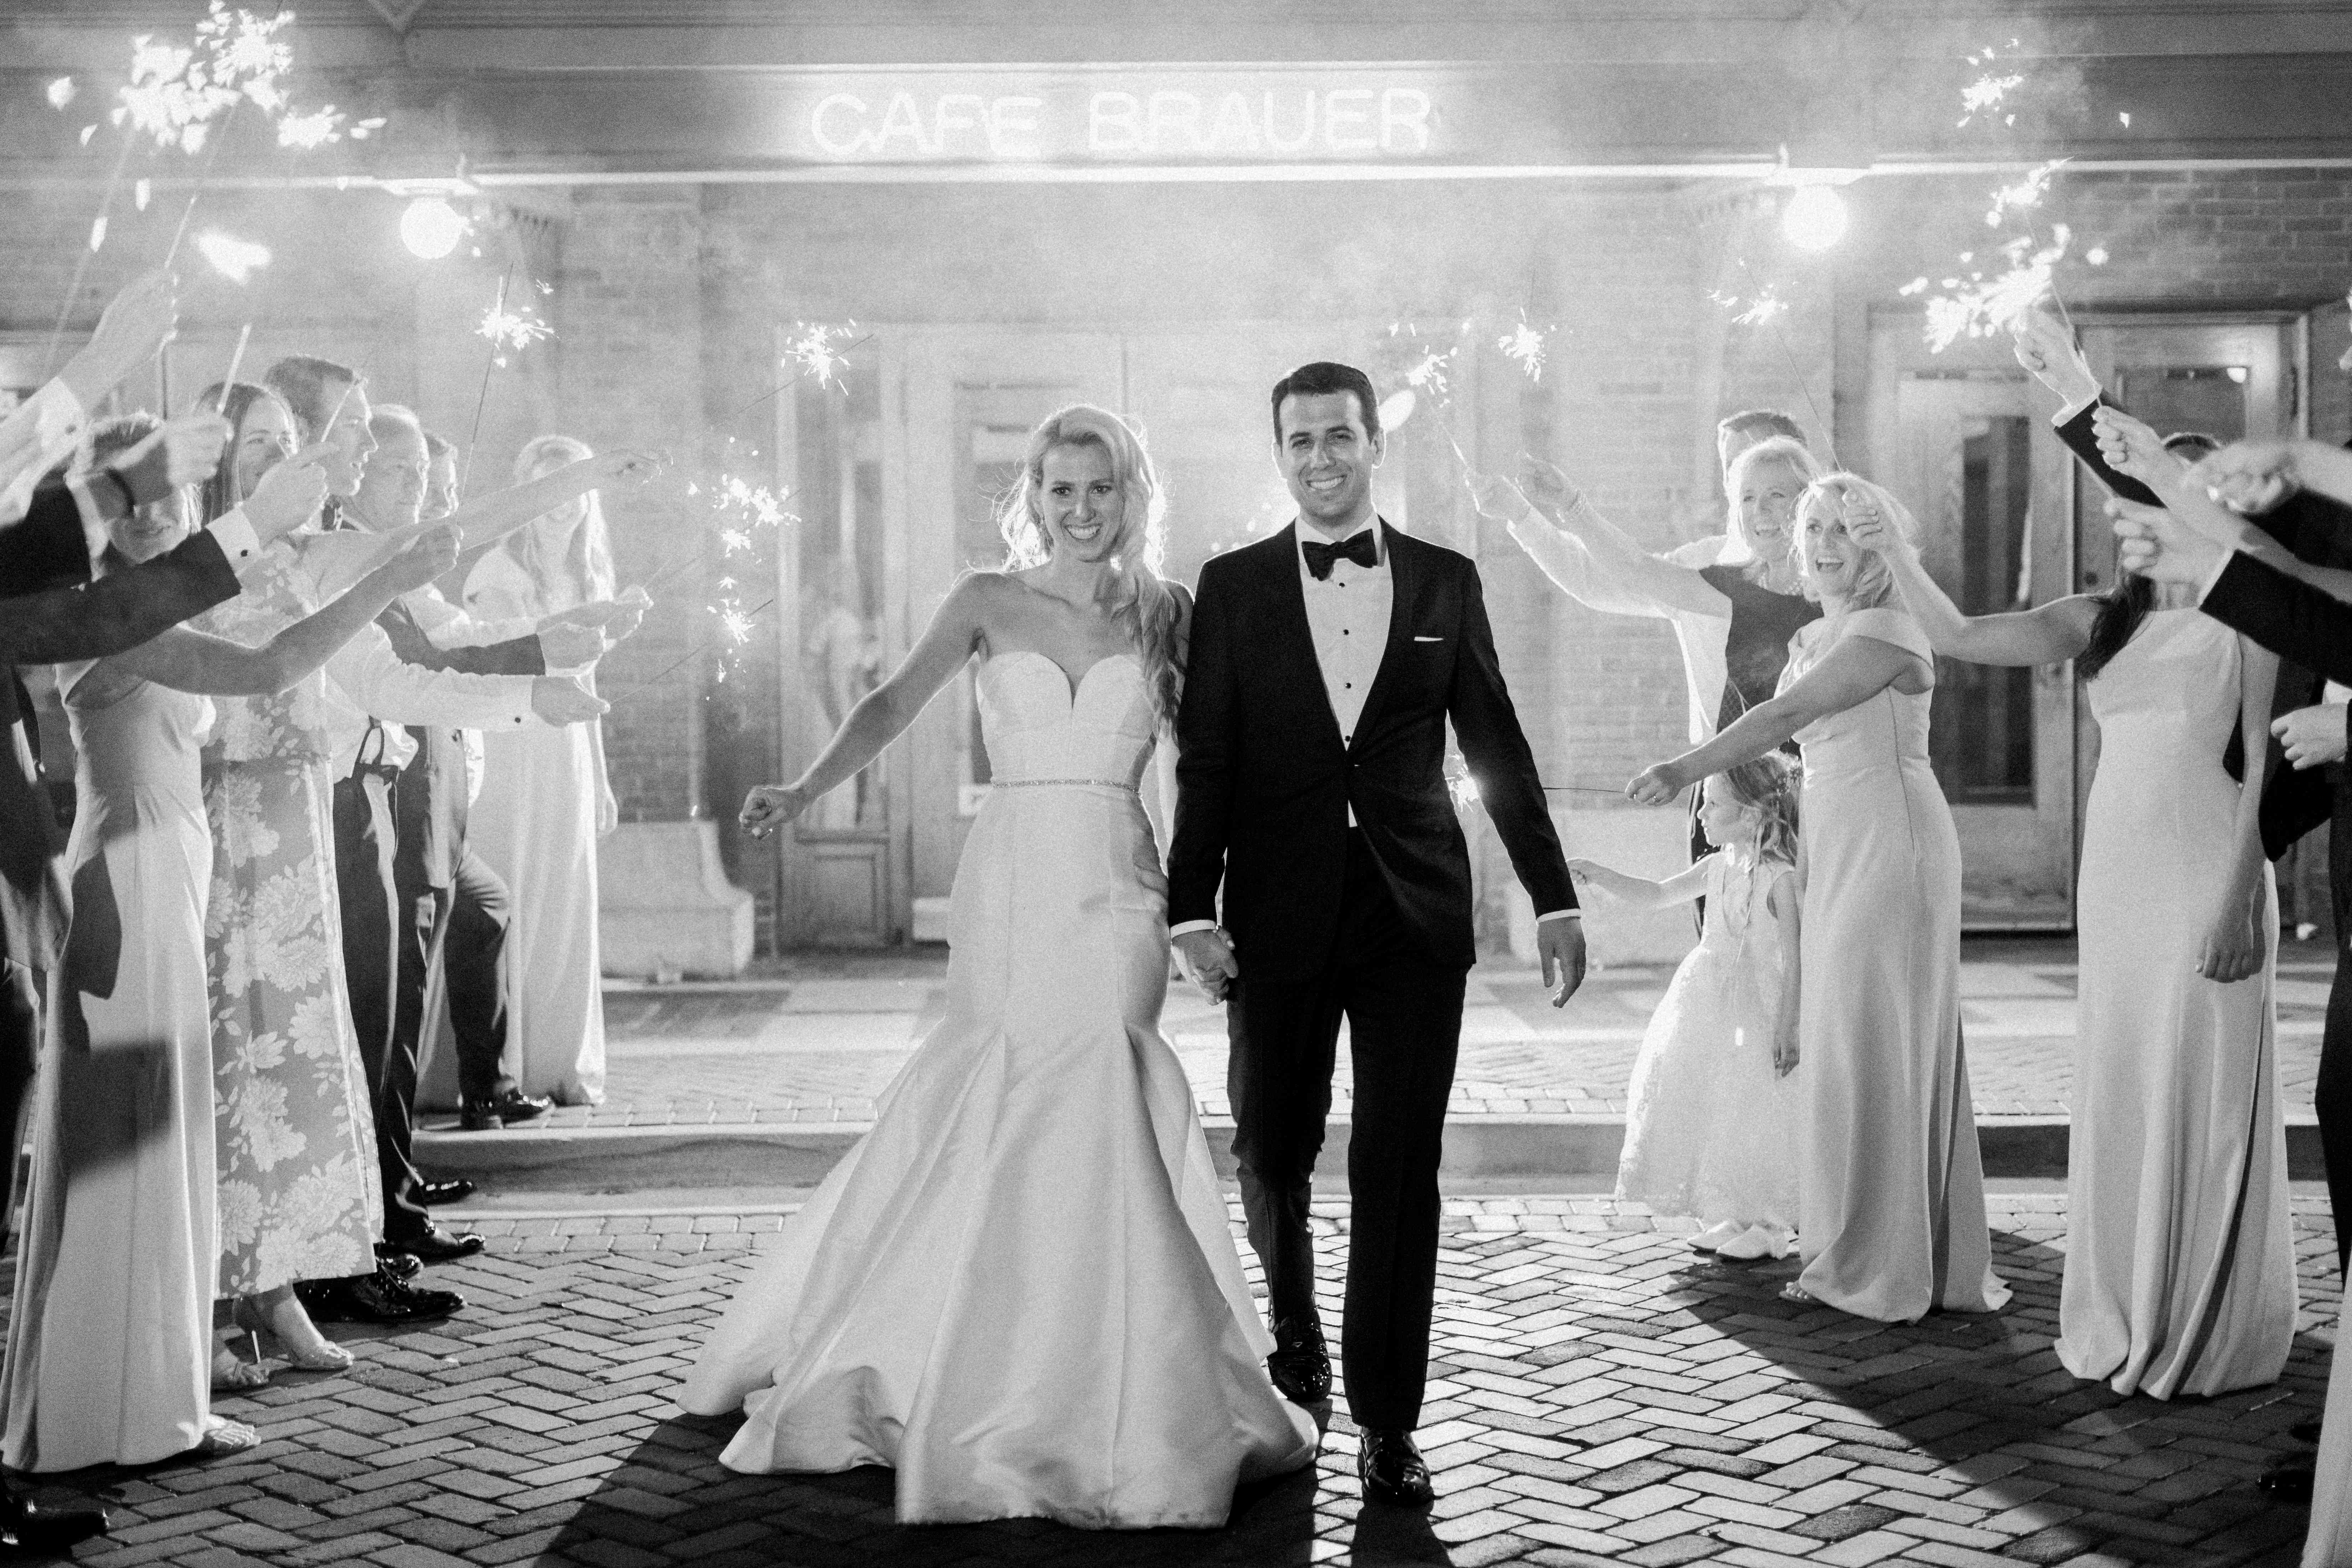 <p>Bride and groom with sparklers</p><br><br>